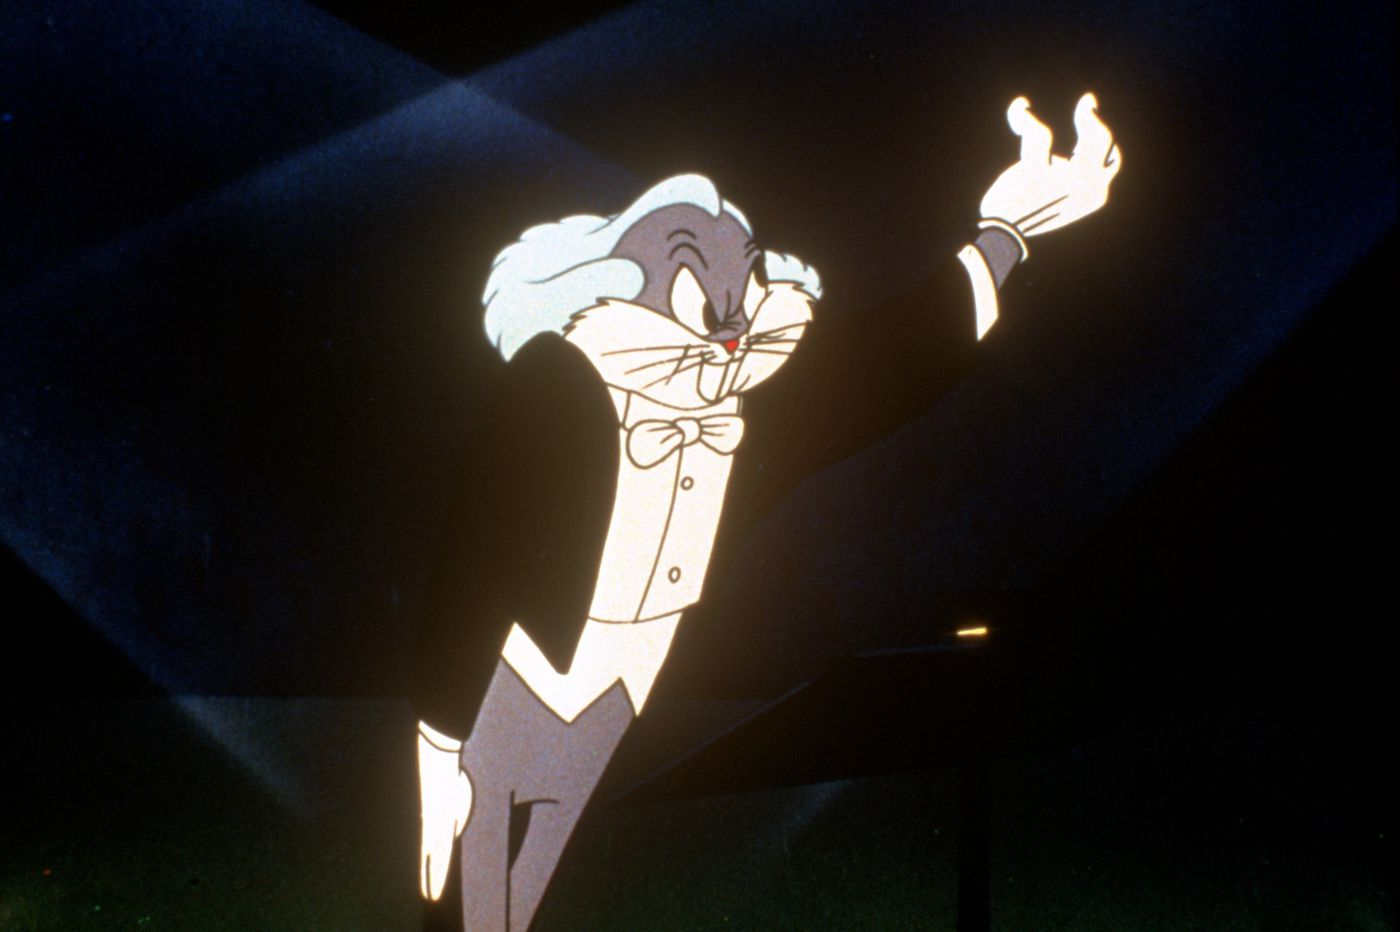 Bugs Bunny and the Philadelphia Orchestra have a Looney show for you this weekend